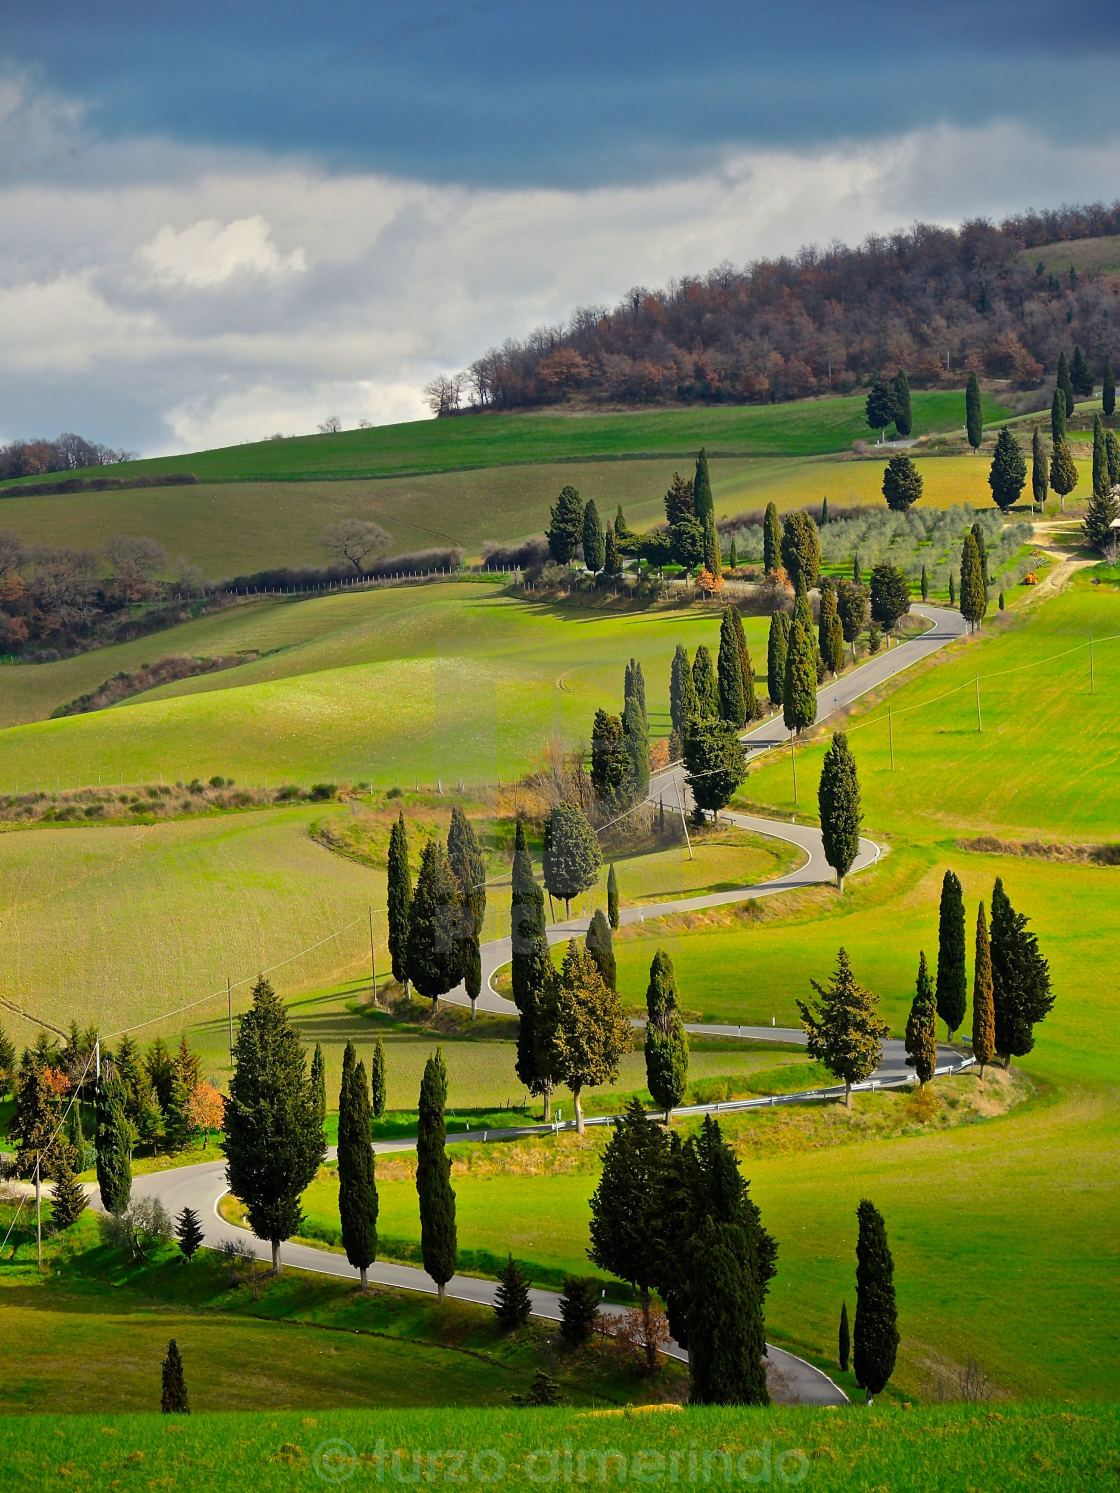 Paesaggio toscano strada con cipressi  License download or print for 248  Photos  Picfair